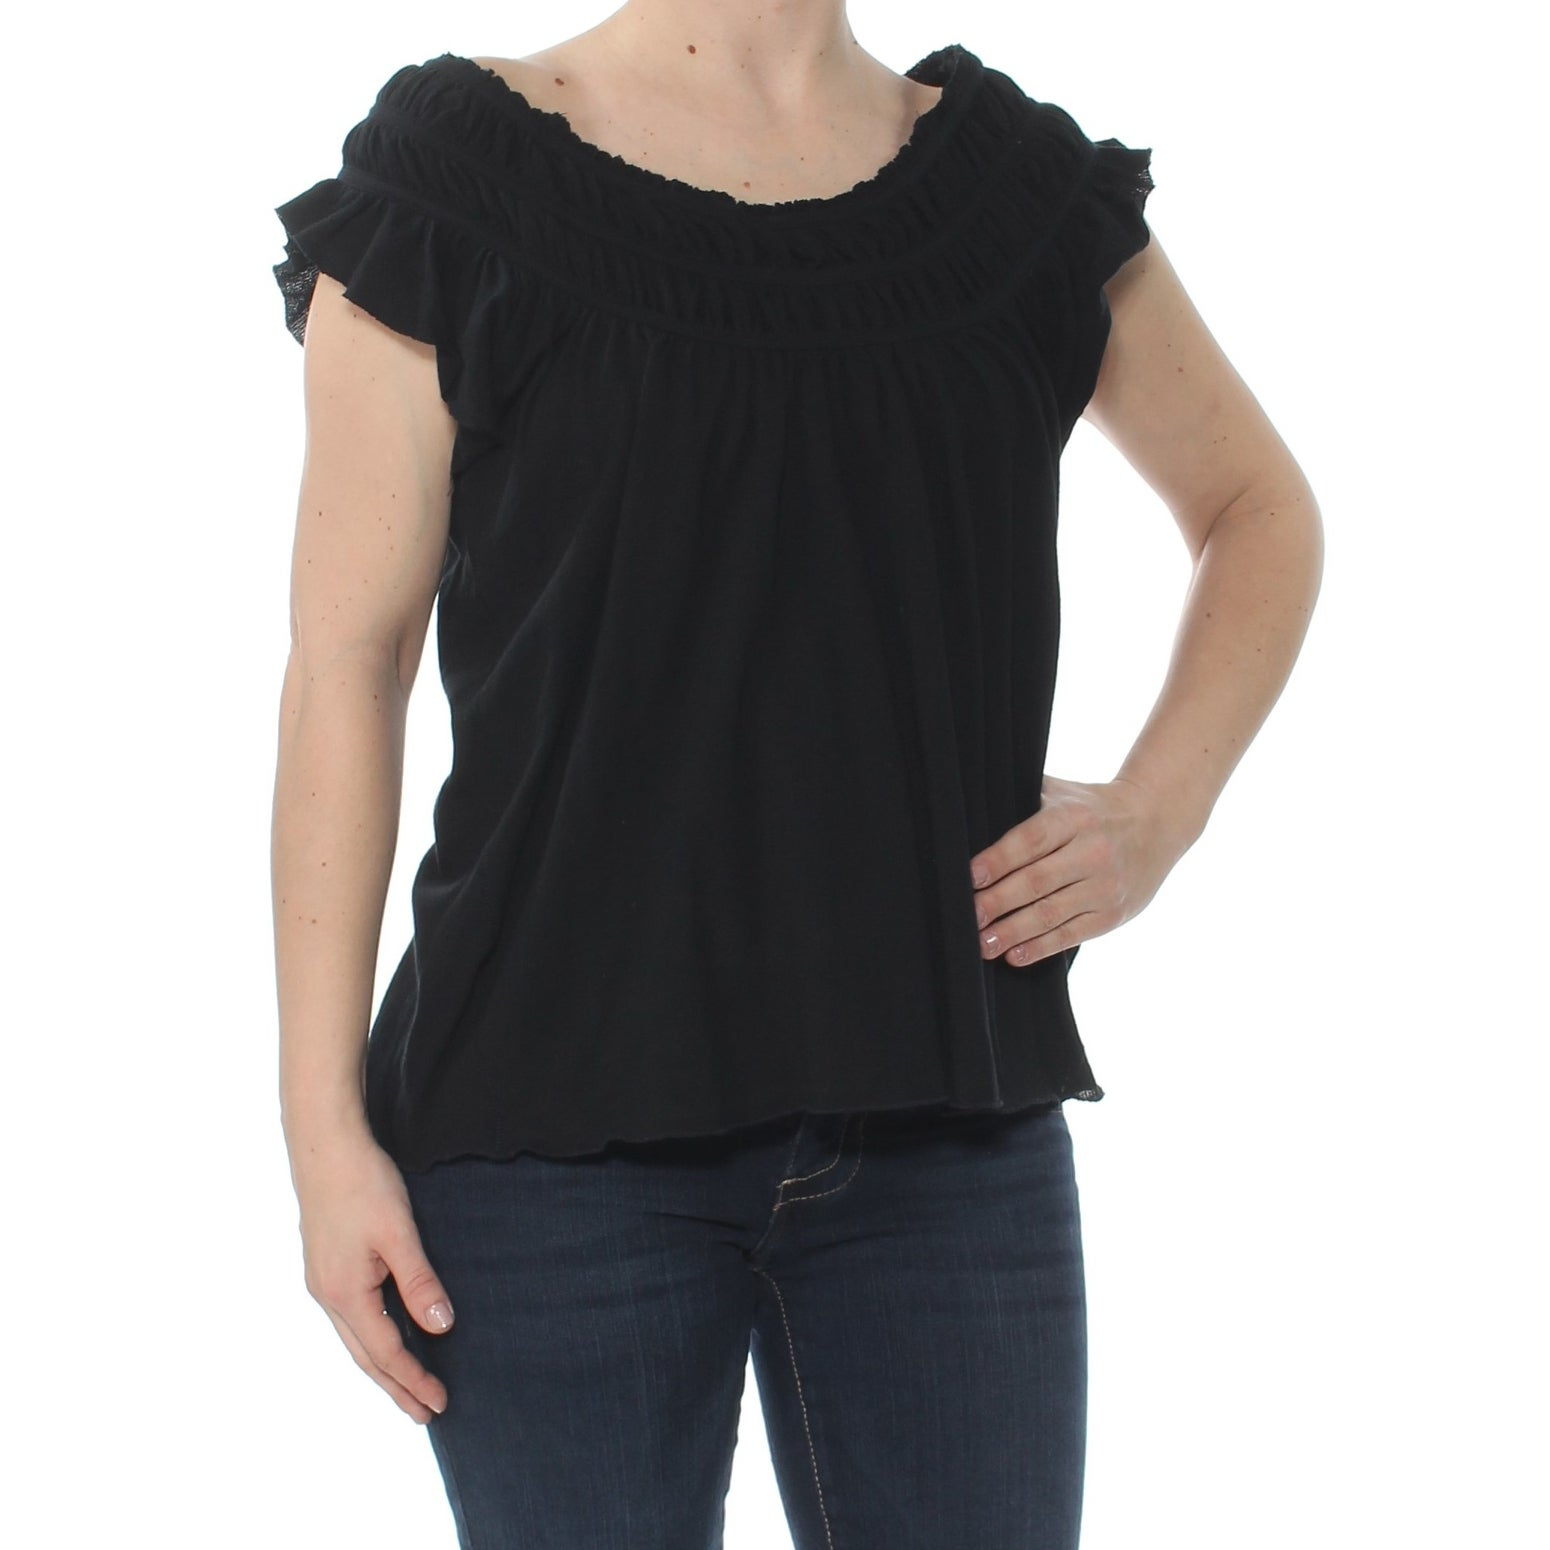 30a78f5ed61096 Shop FREE PEOPLE Womens Black Coconut Short Sleeve Scoop Neck Top Size: S -  Free Shipping On Orders Over $45 - Overstock - 27970158